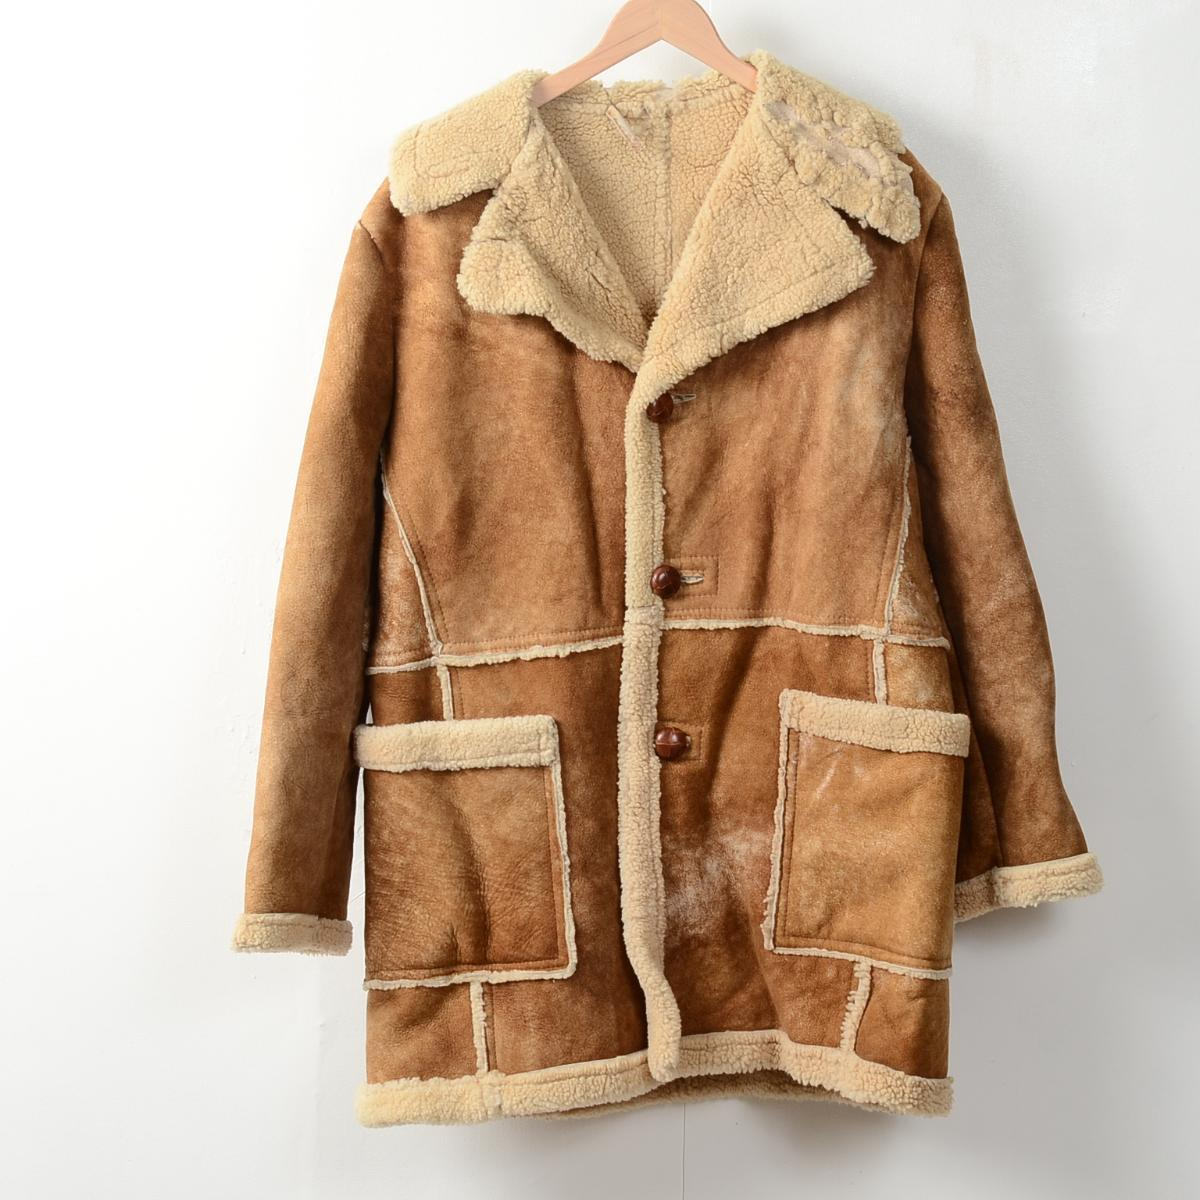 Sheepskin Coat Mens Vintage | Fashion Women's Coat 2017